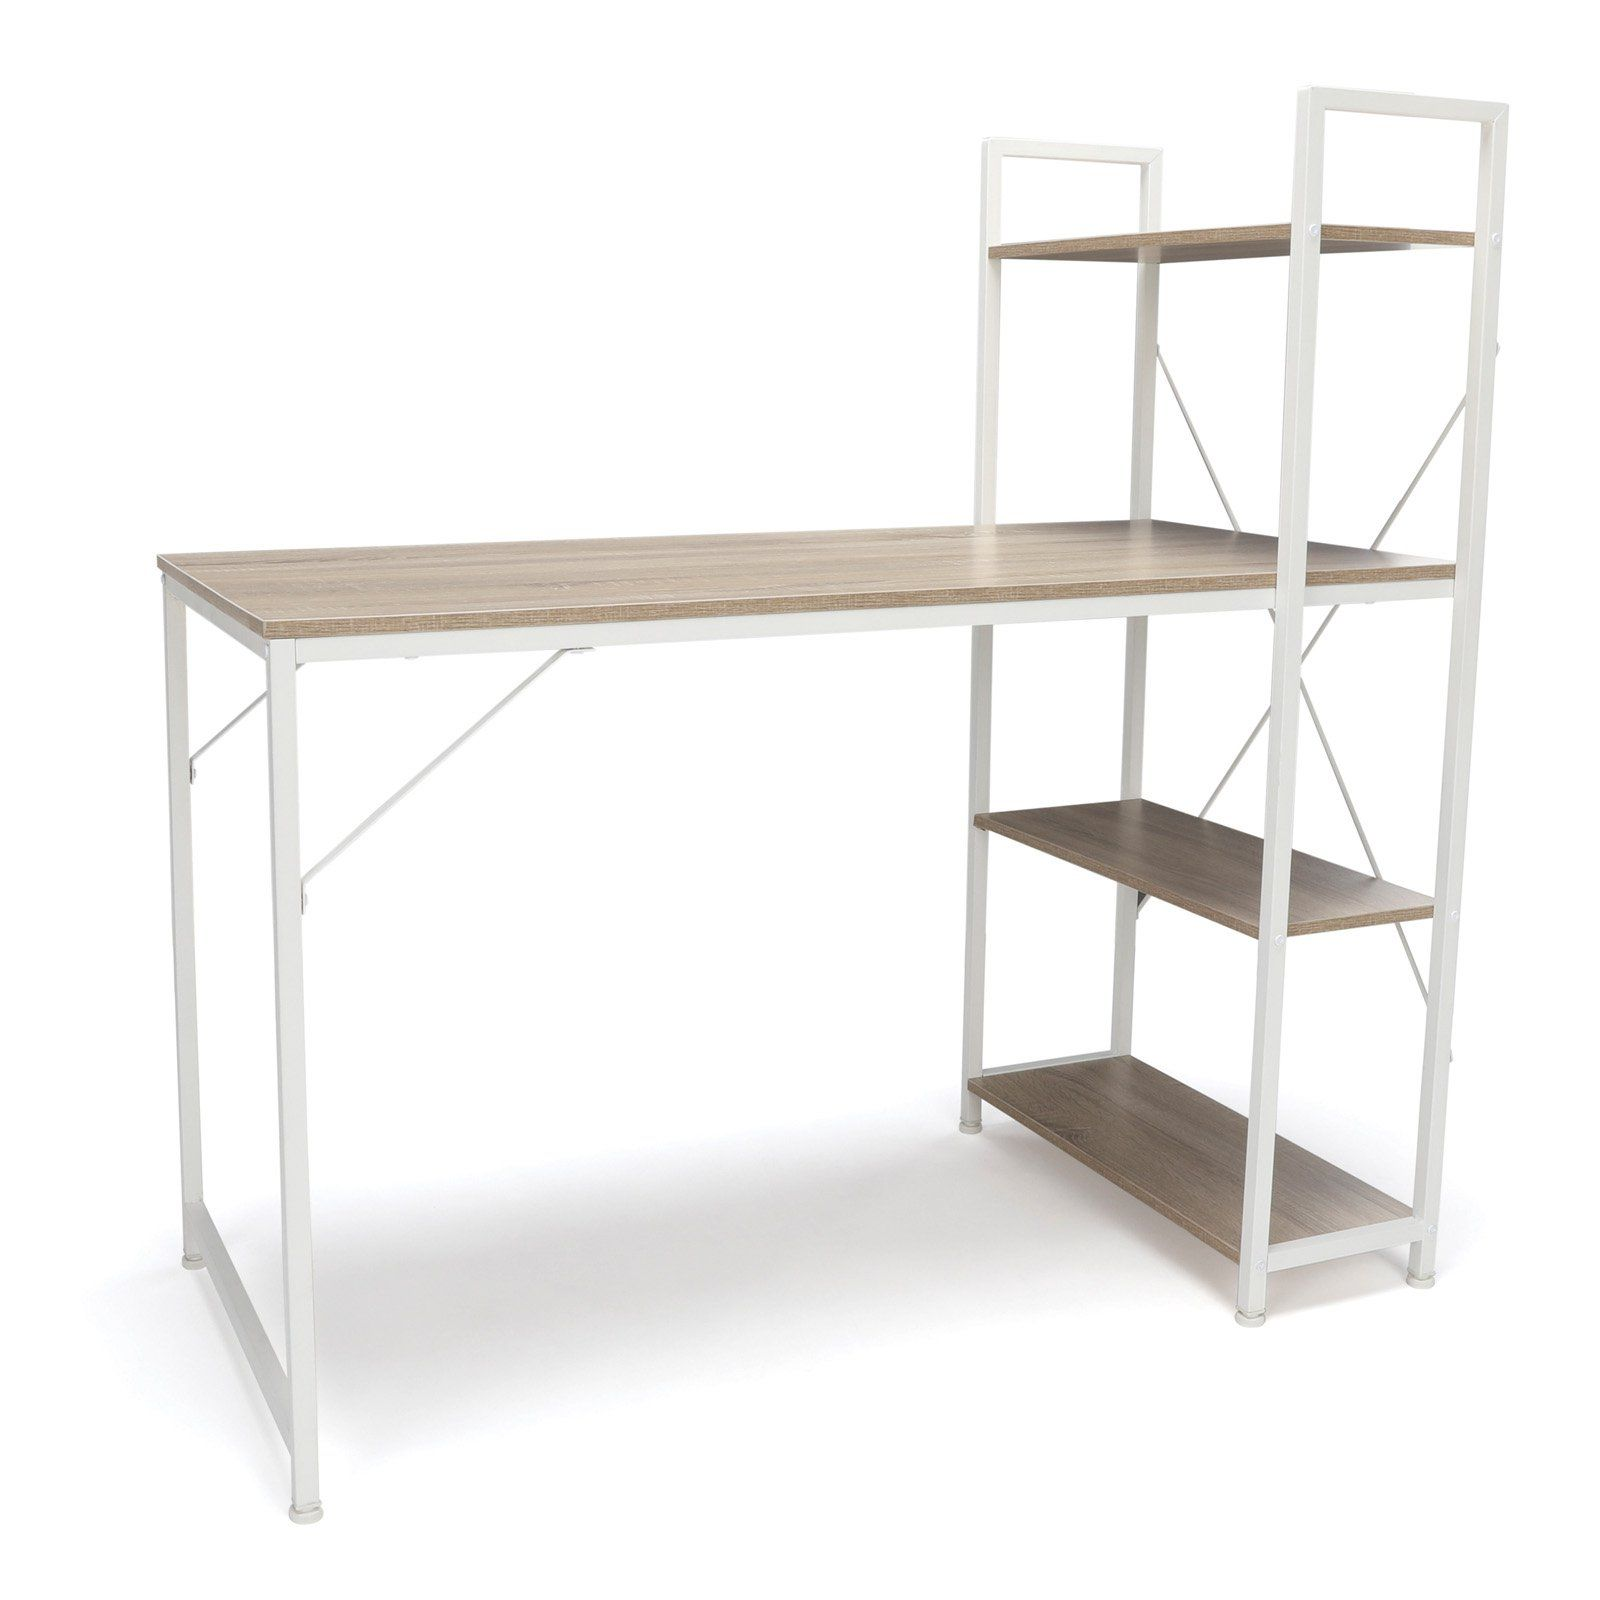 OFM Essentials Combination Desk 4 Shelf Unit White